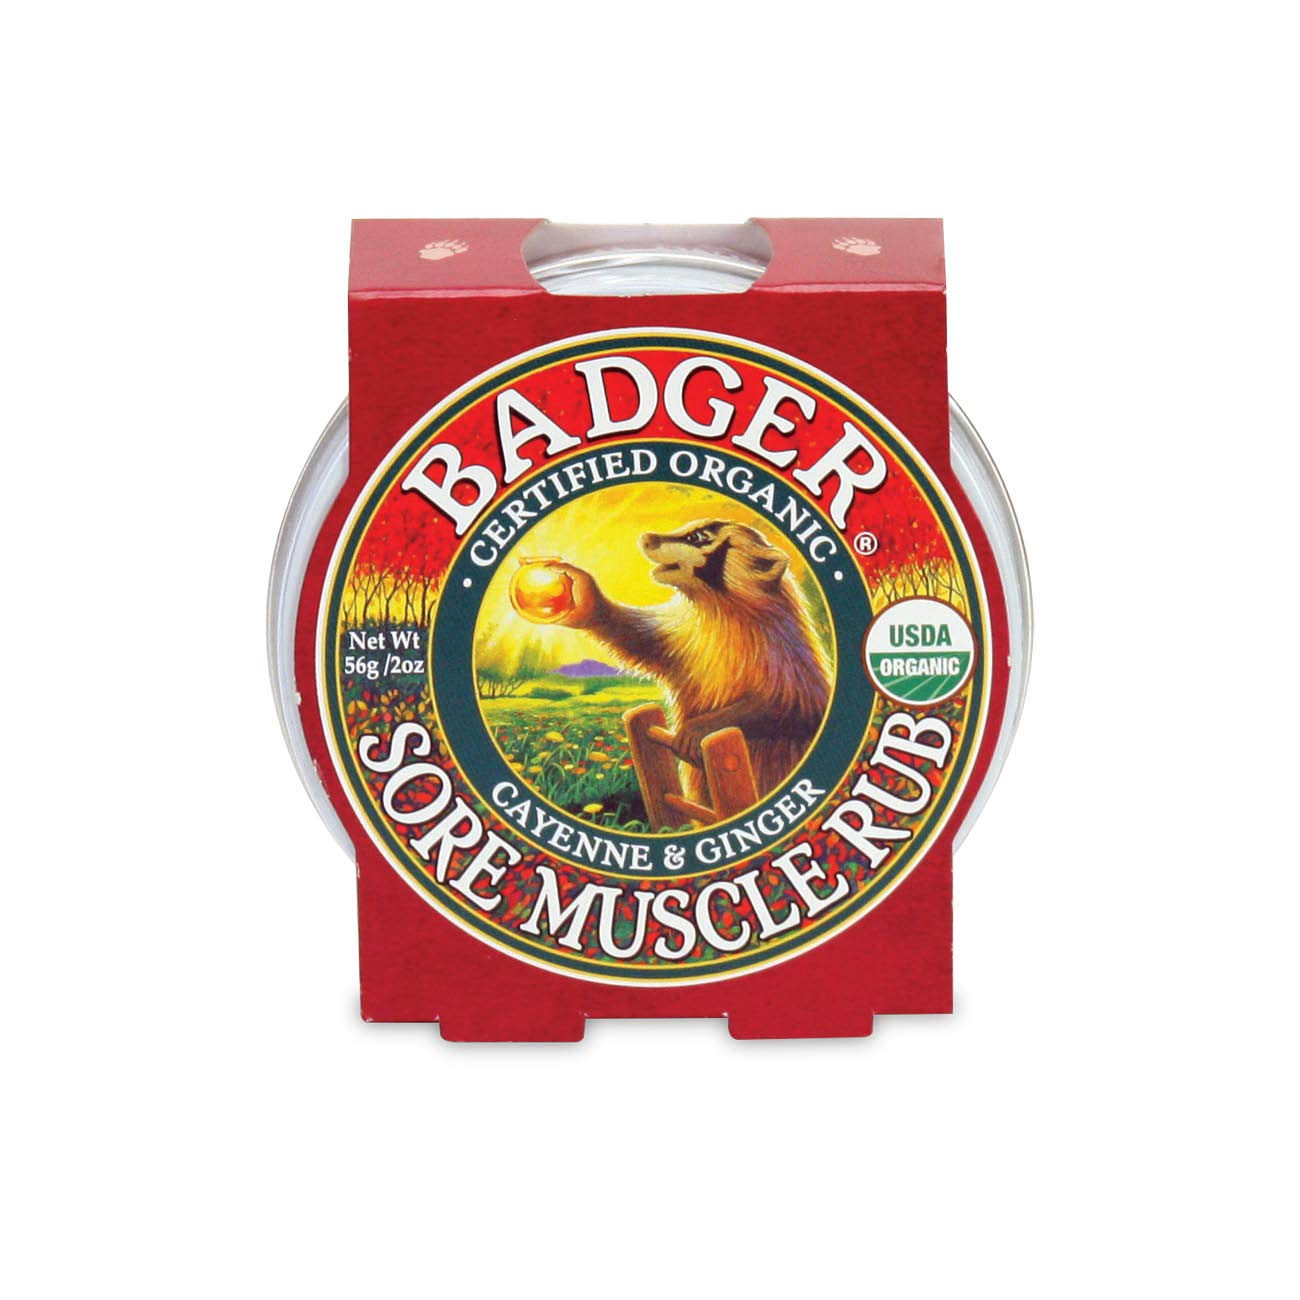 Badger - Sore Muscle Rub, Cayenne Pepper and Ginger, Organic Sore Muscle Rub, Warming Balm, Muscle Relief Balm, Warming Muscle Rub, Sore Muscle Balm, 2 oz